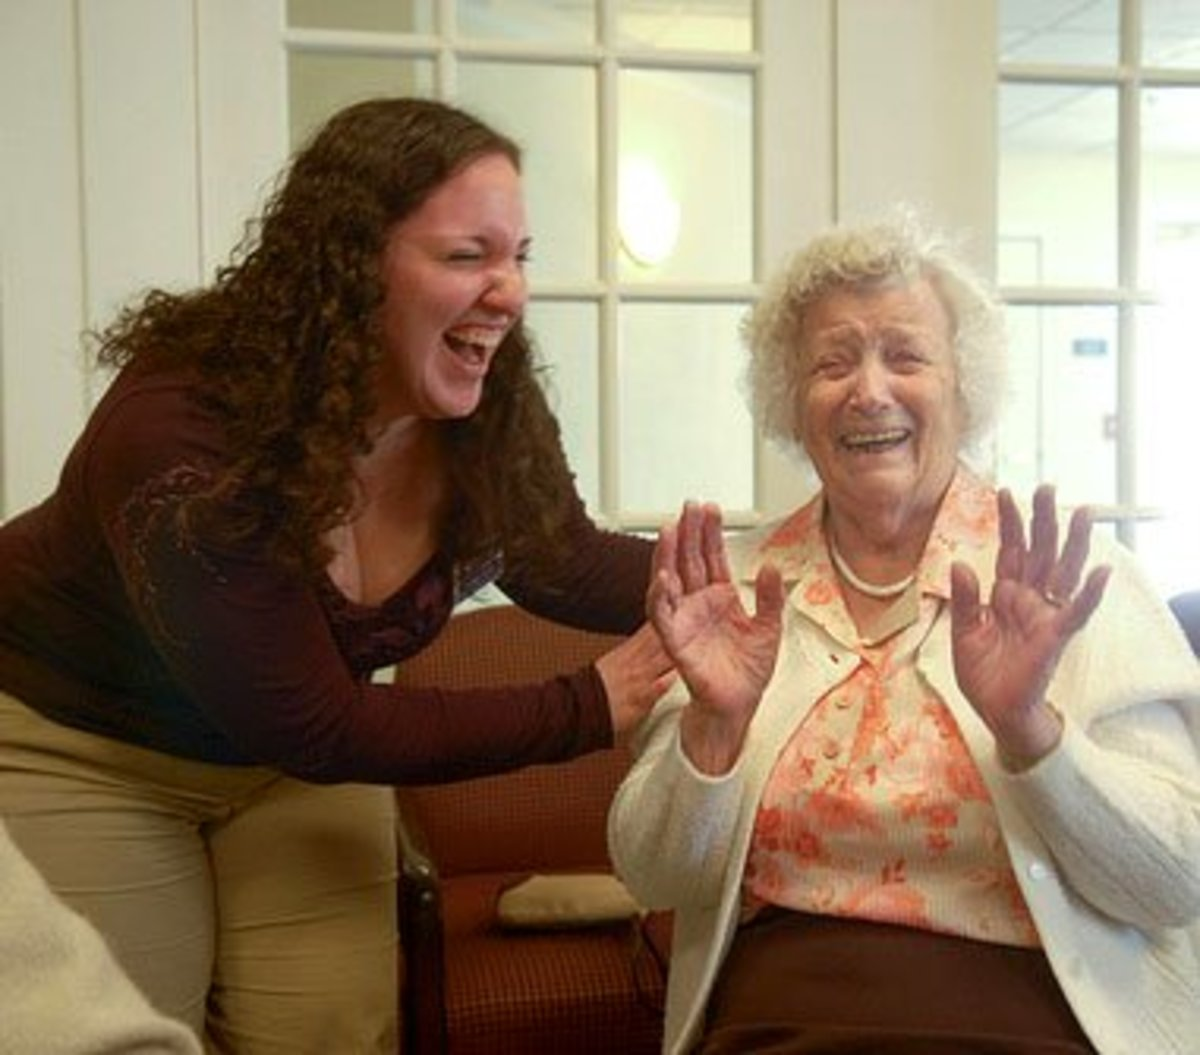 A good laugh is the best medicine. Physical therapy student Ashley Testa shares a laugh with a Legacy Senior Living resident, where she volunteers.